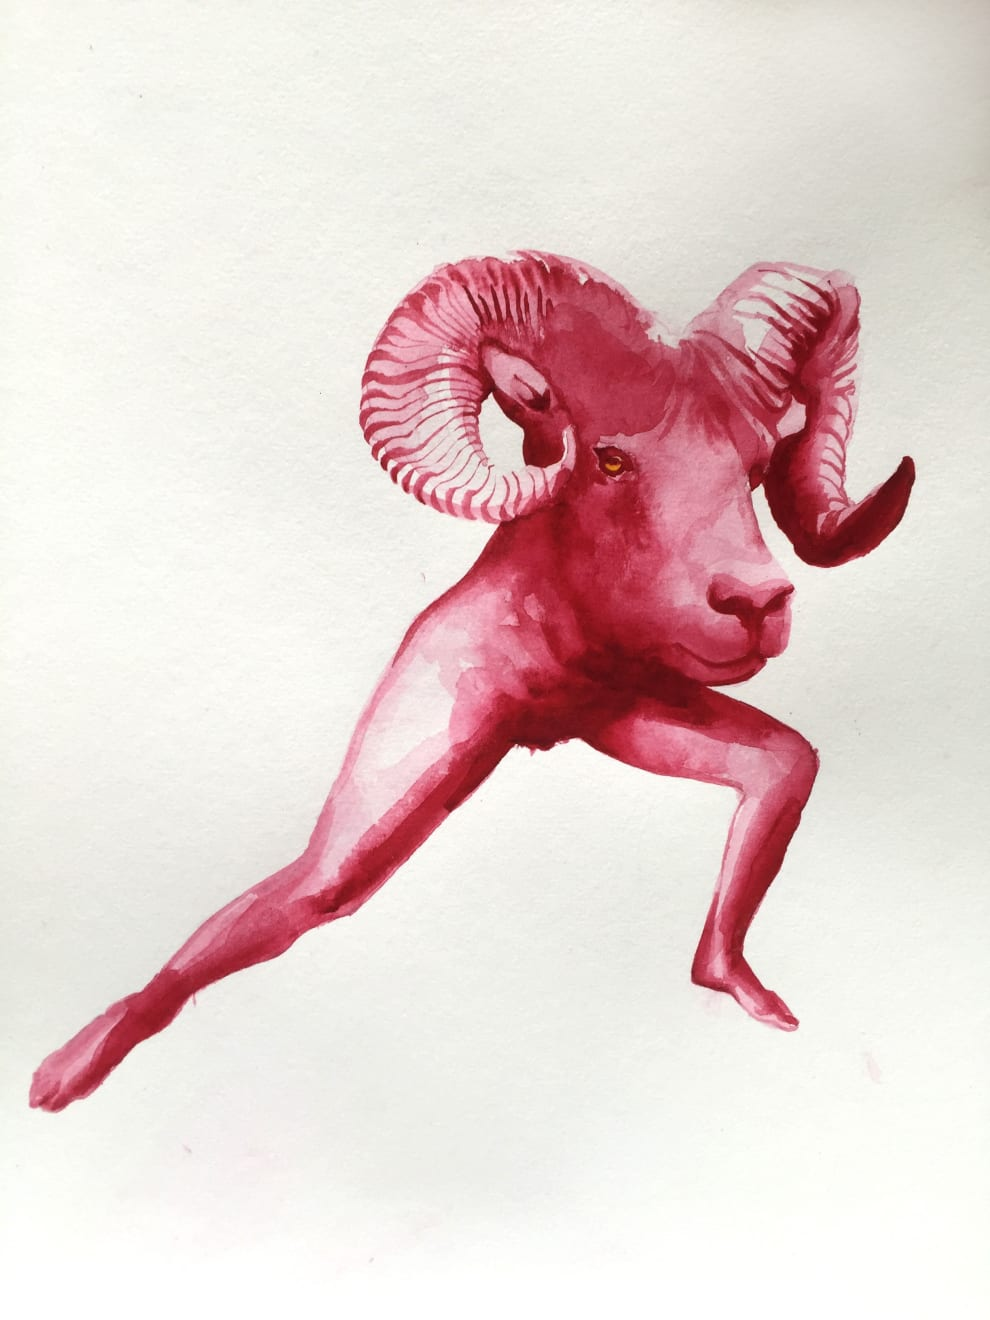 Kirsty Whiten, Ram, 2019, Watercolour, 35 x 25 cm